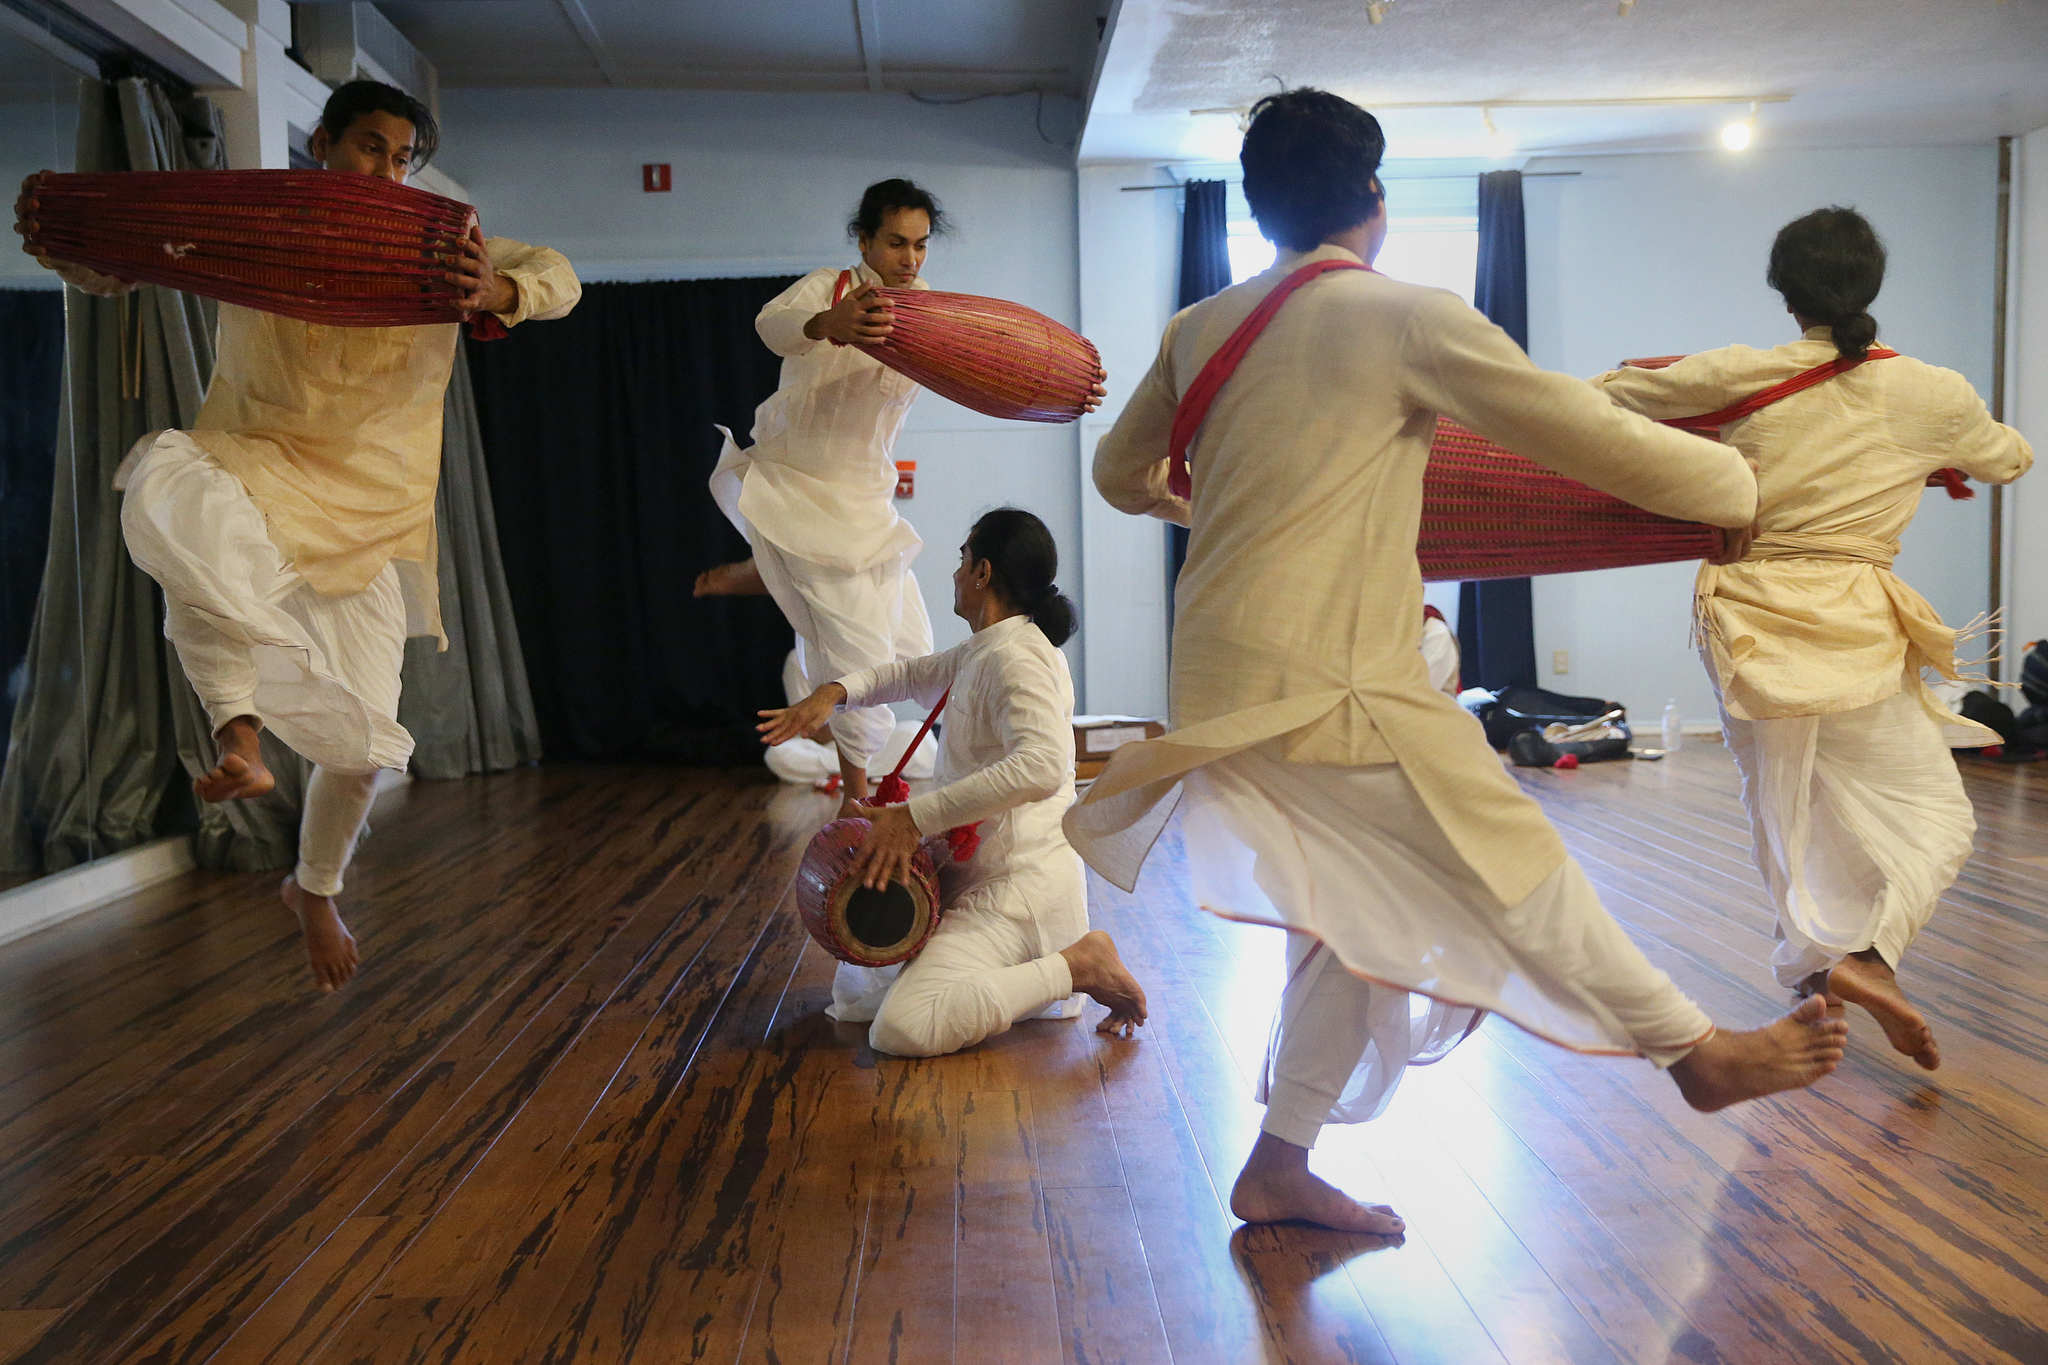 """The Dancing Monks of Assam rehearse with khol drums at the Headlong dance studio in South Philadelphia on Friday, April 20, 2018. The group will perform the Sattriya form of dance in their performance, titled """"An Odyssey of the Spirit,"""" at Drexel University on April 28."""